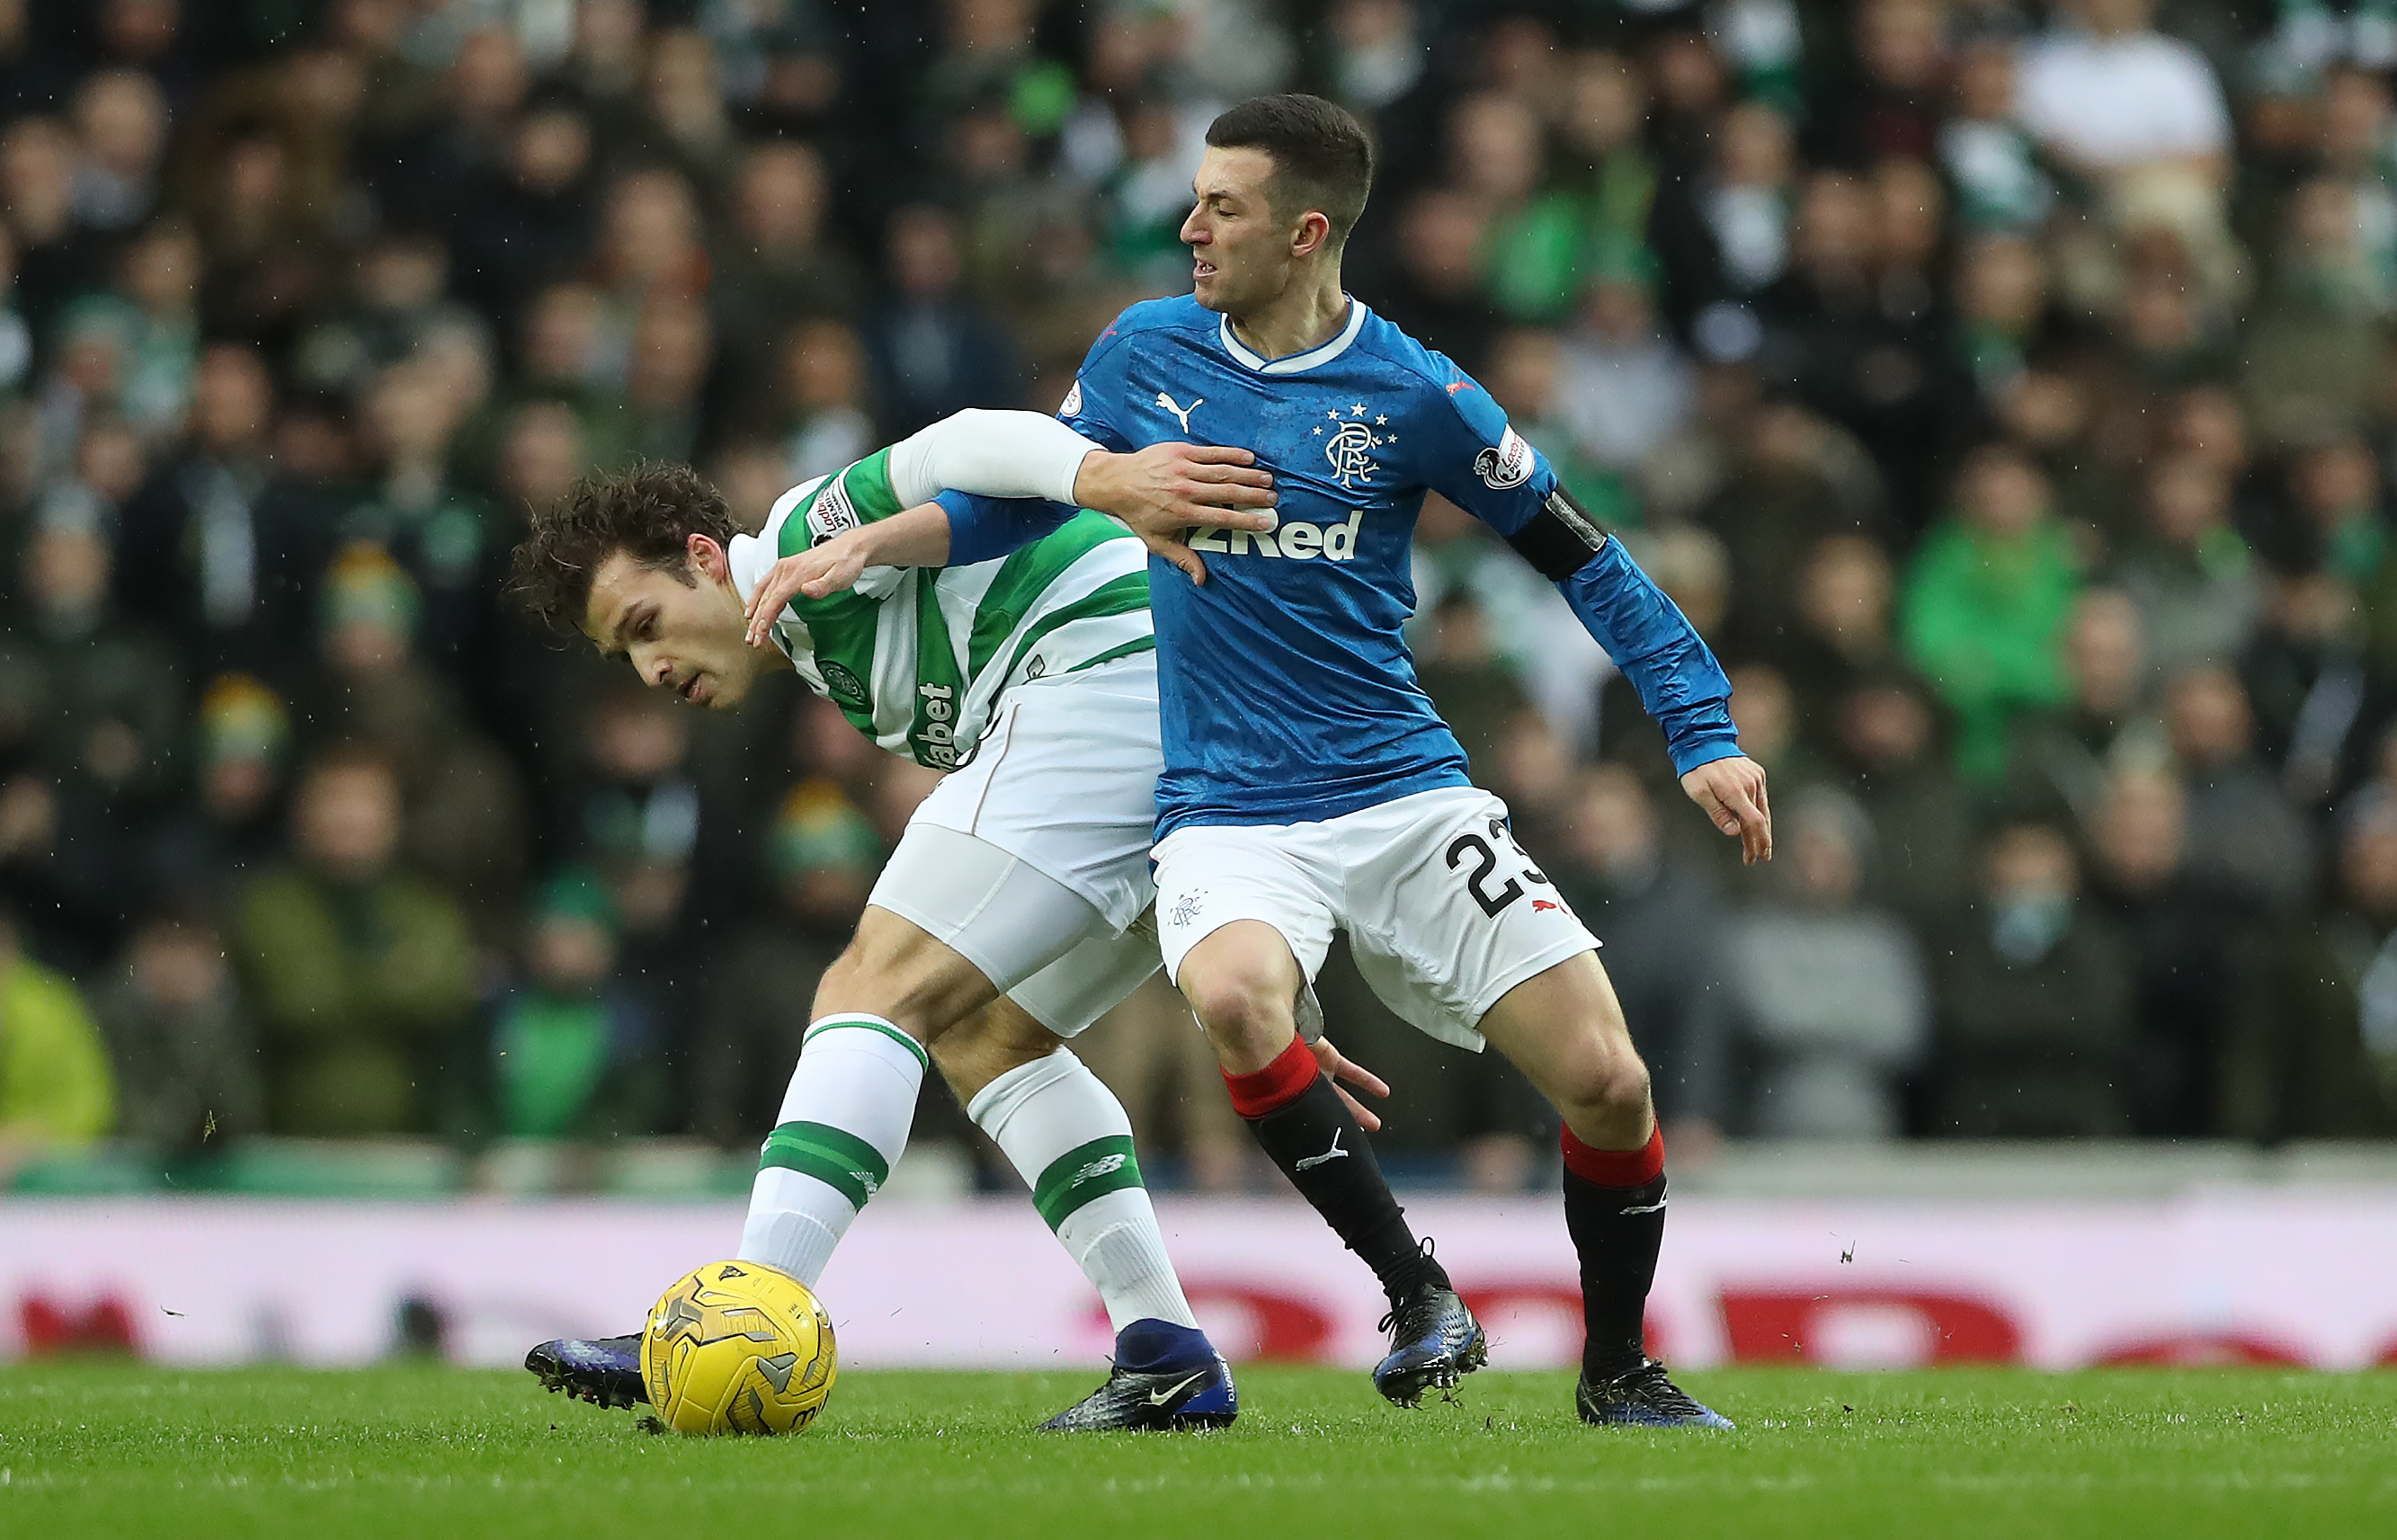 Celtic v Rangers TV channel, kick-off time, odds and head-to-head ahead of Scottish Cup semi-final